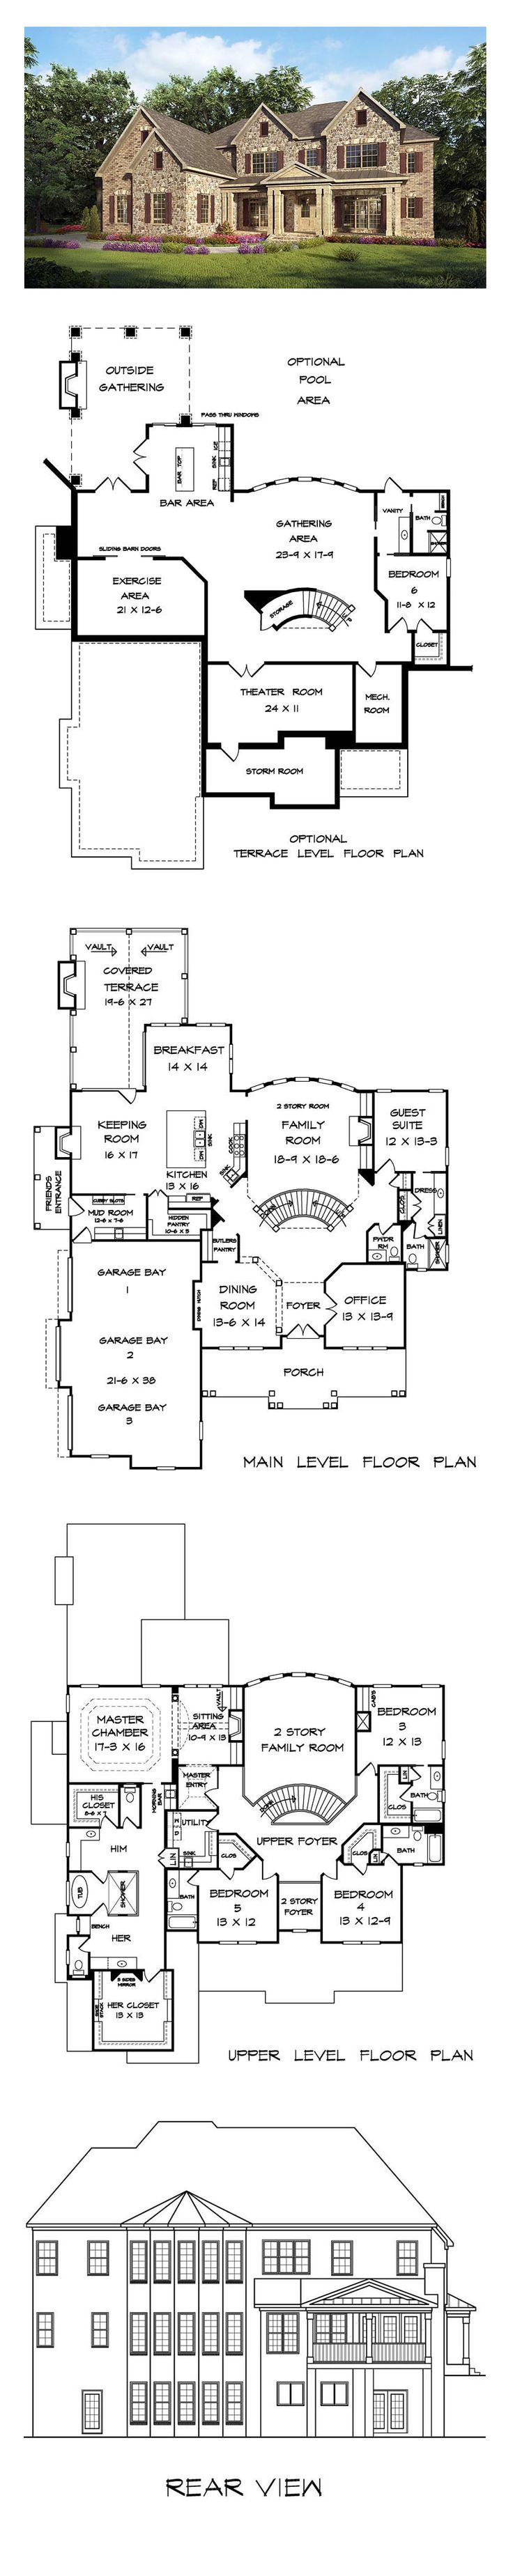 house plans furthermore old style church birdhouse plans on victorian house plans furthermore old style church birdhouse plans on victorian house plans furthermore old style